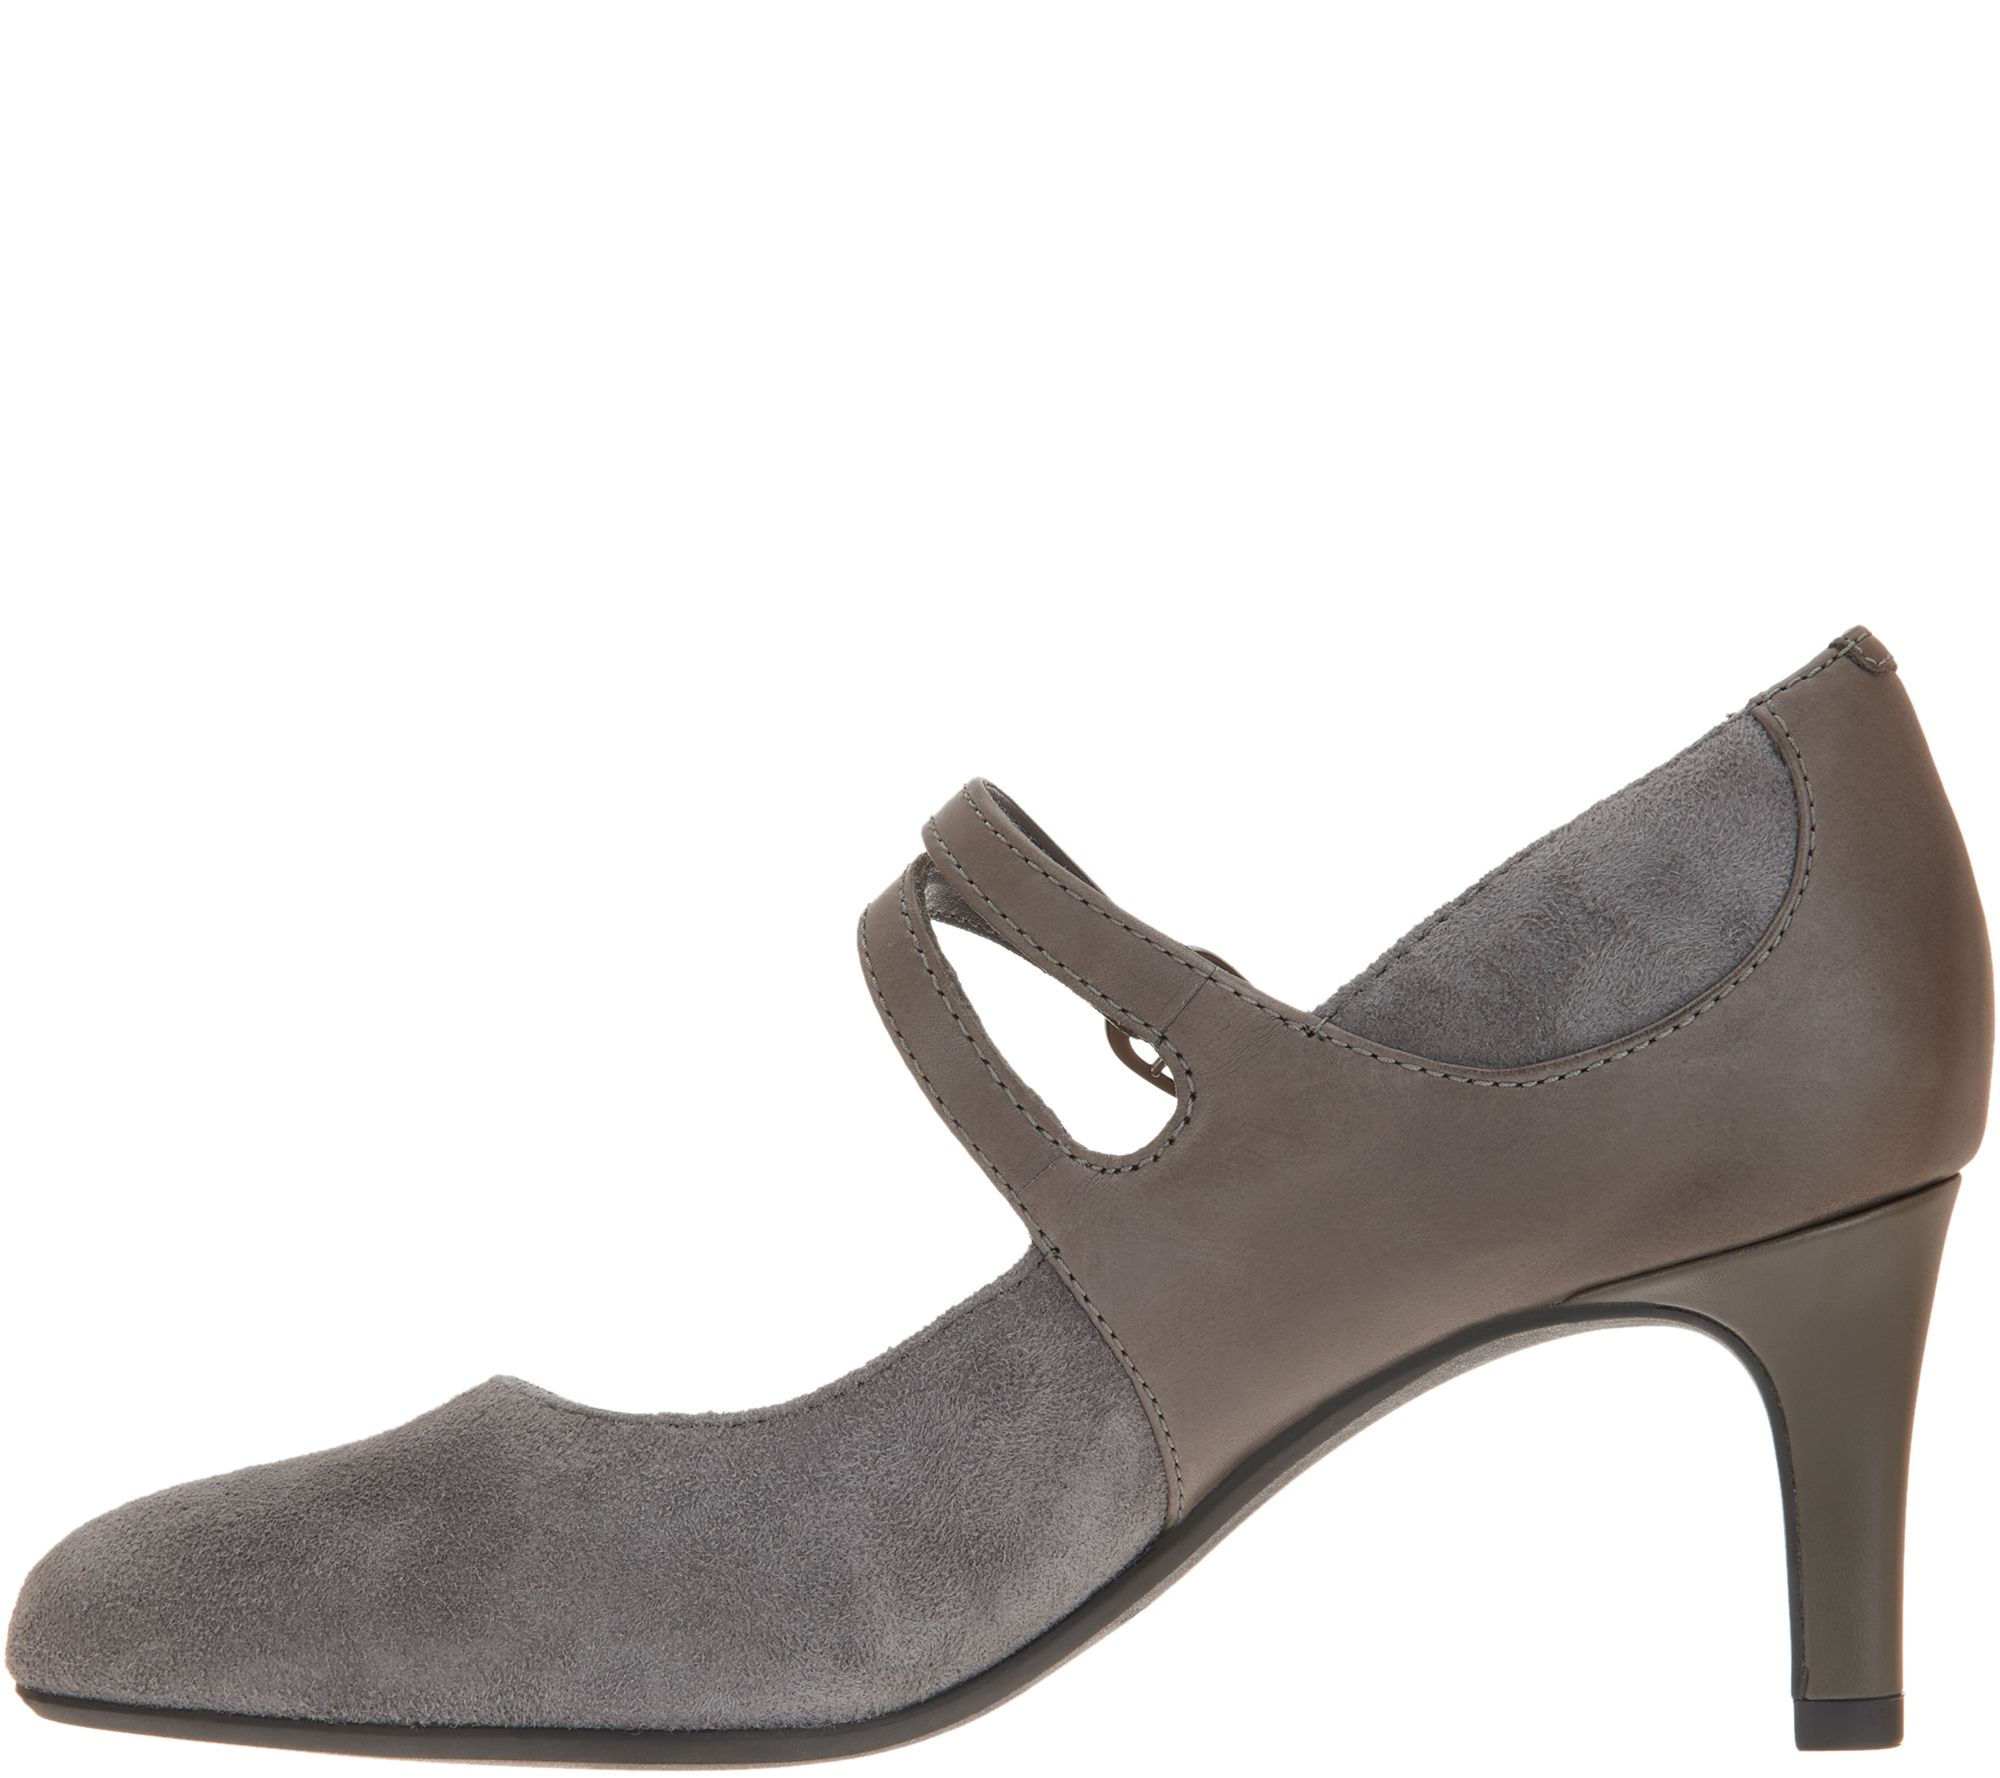 8a288819e7b Clarks Suede Mary Jane Pumps - Dancer Reese — QVC.com